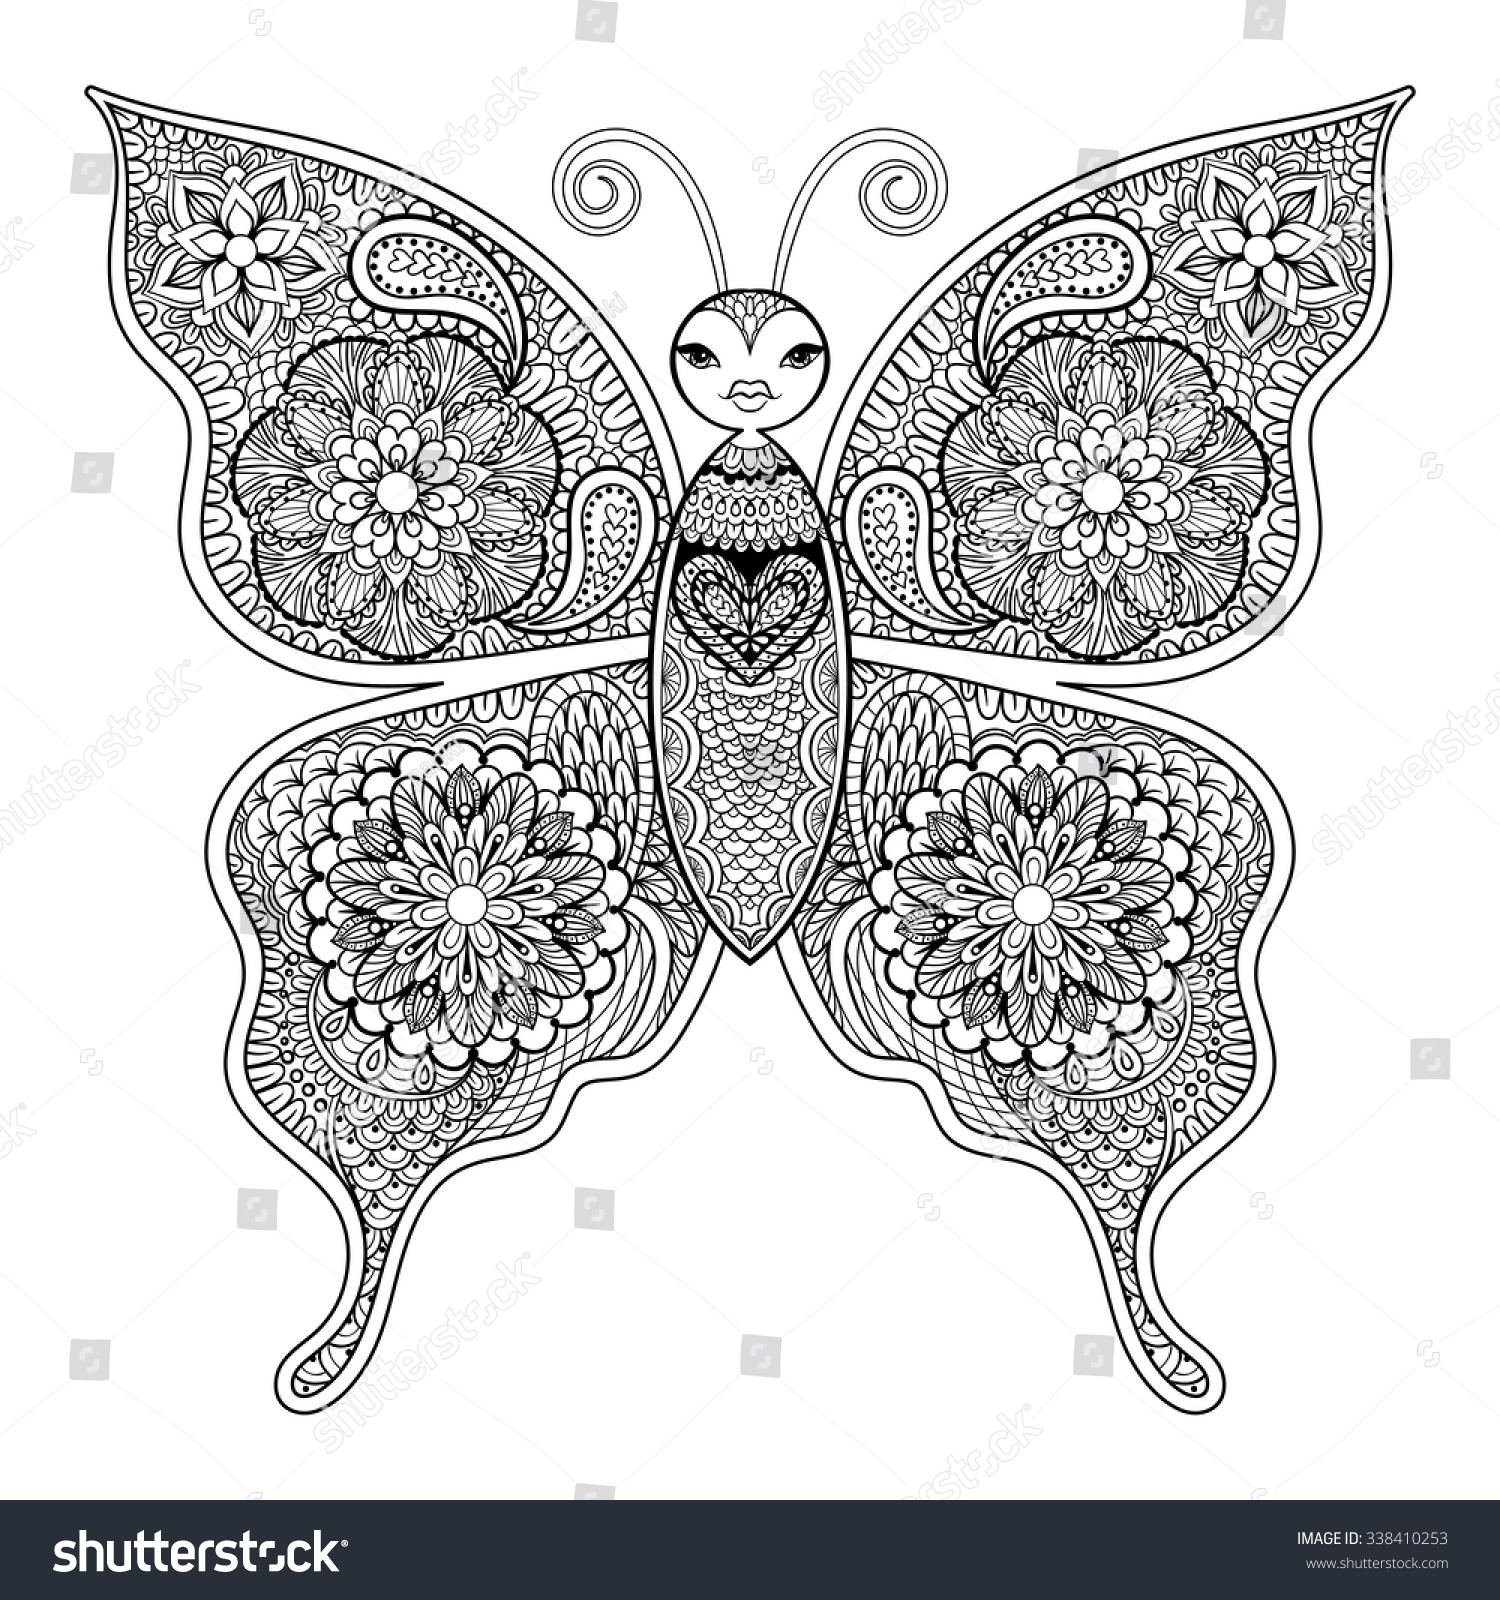 Downloadable butterfly coloring pages - Zentangle Vector Butterfly For Adult Anti Stress Coloring Pages In Doodle Style Ornamental Tribal Patterned